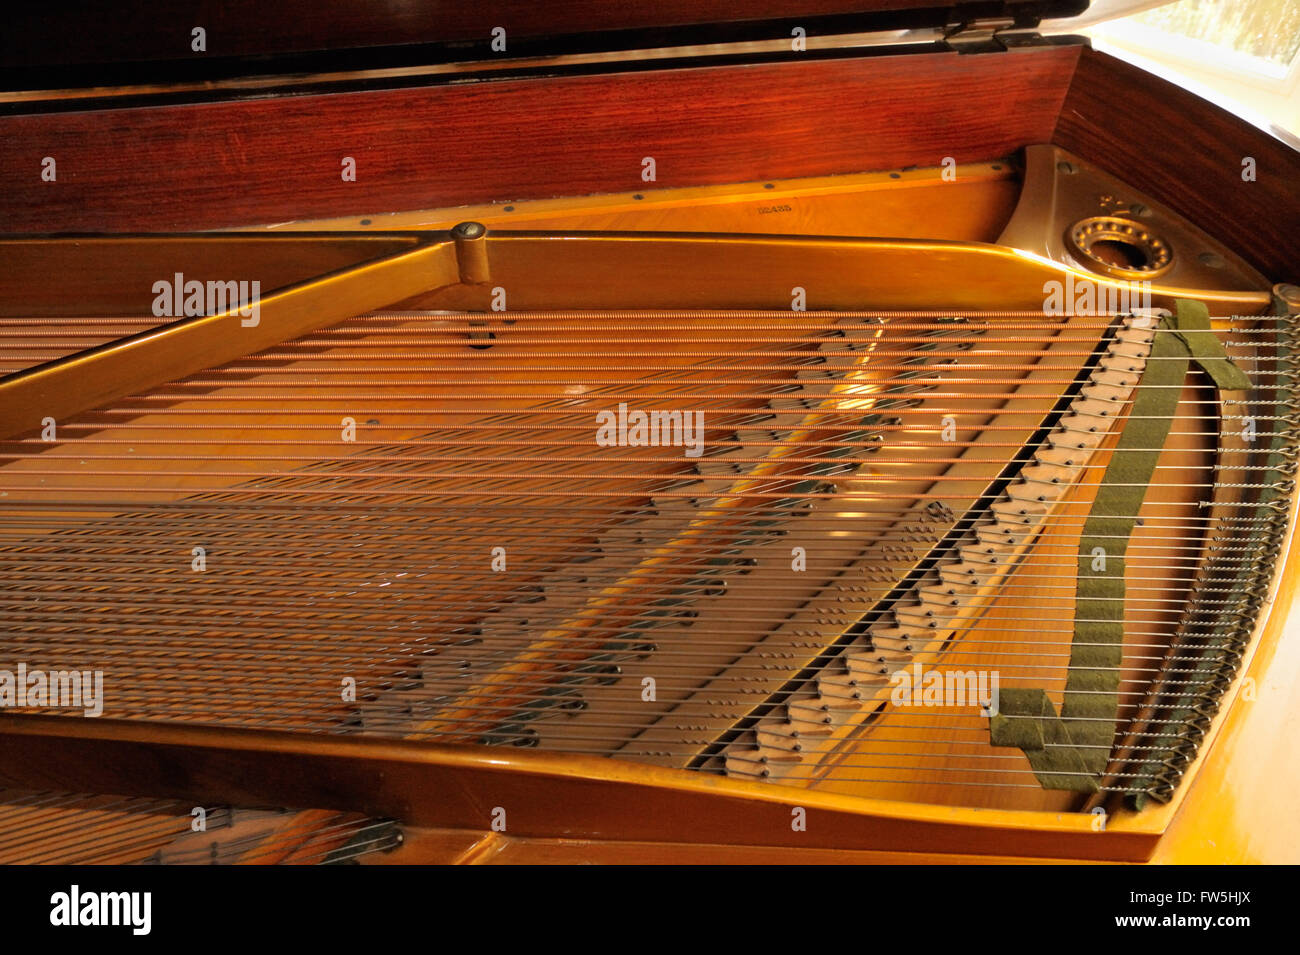 Piano mechanism - sound board, strings and bass bridge of